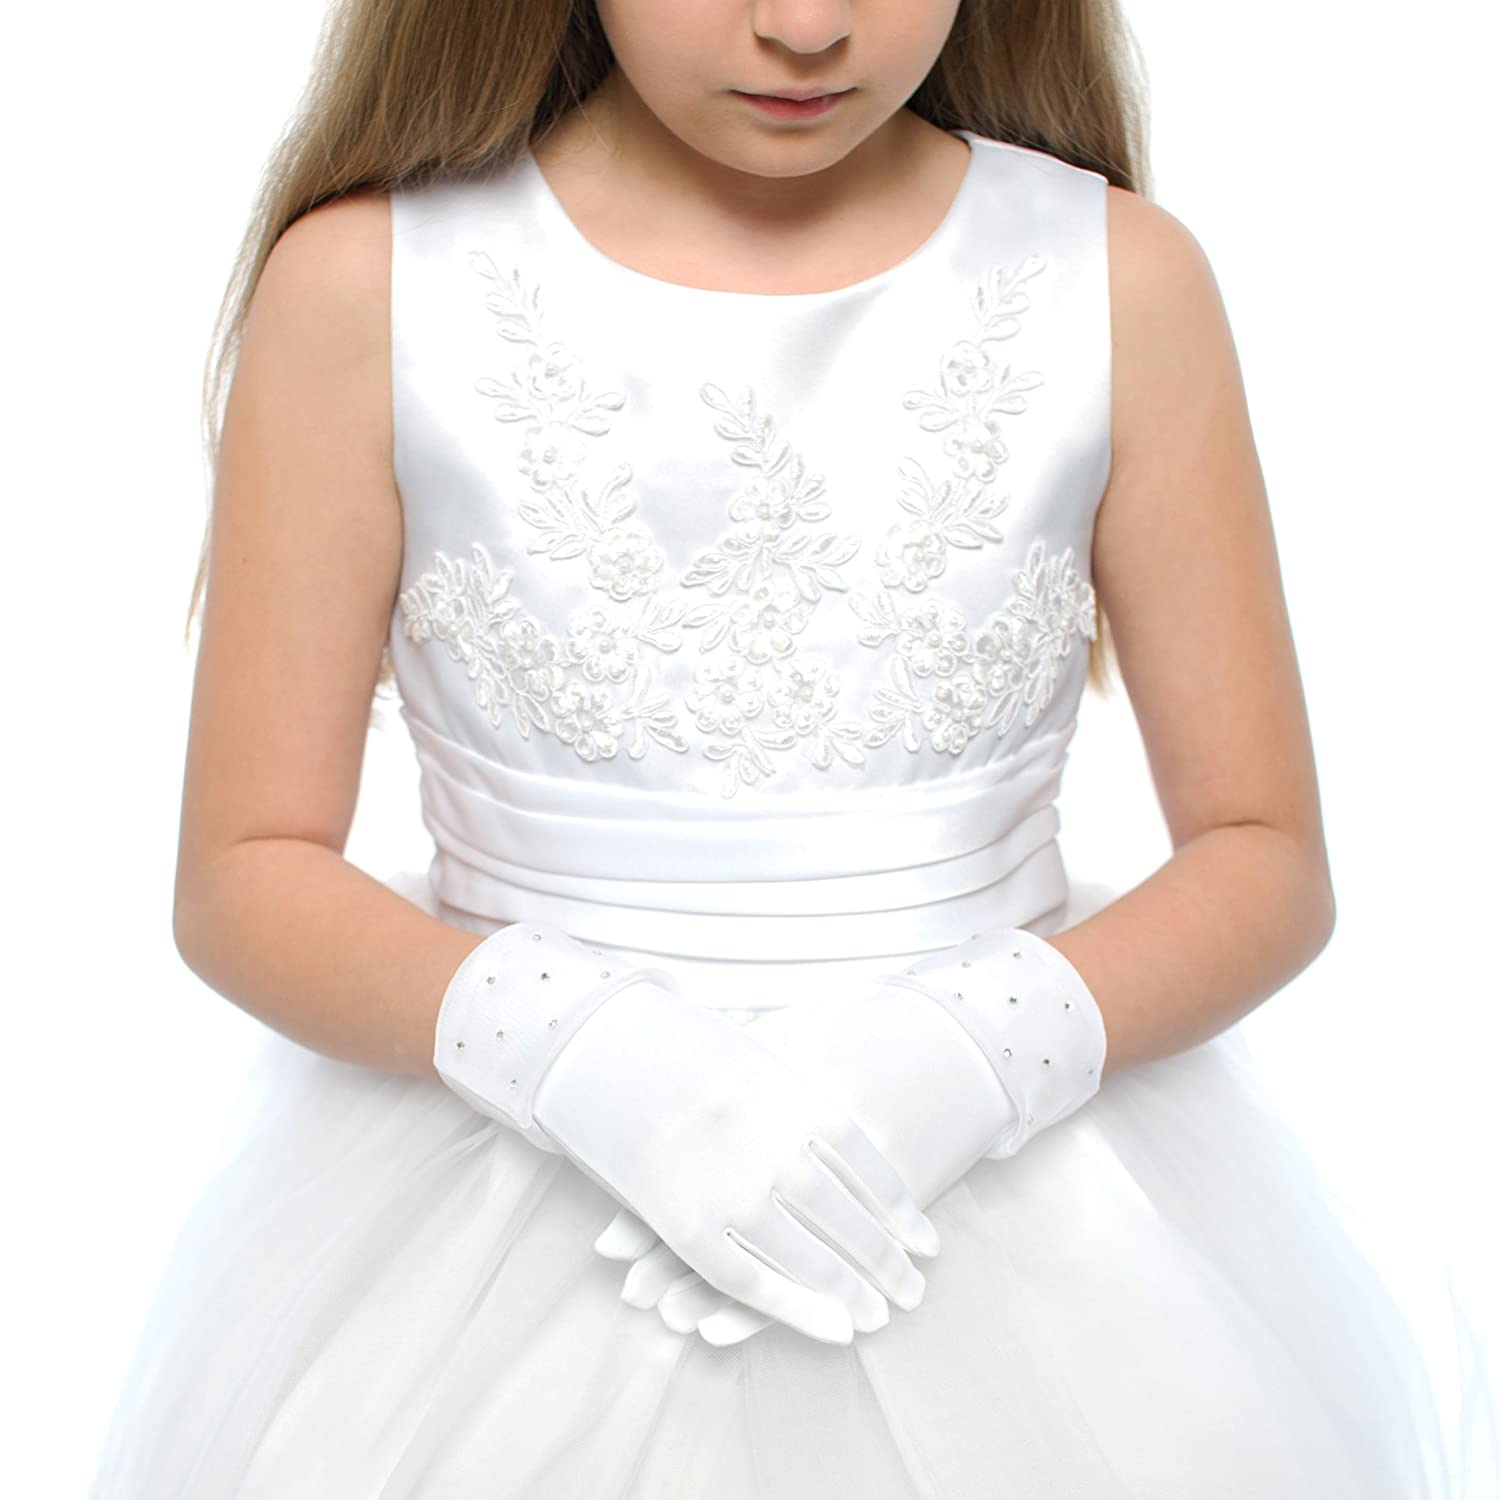 DressForLess Lovely Rhinestones Lace First Communion Girls Glove White 8-14, TT-RSG-WT-8